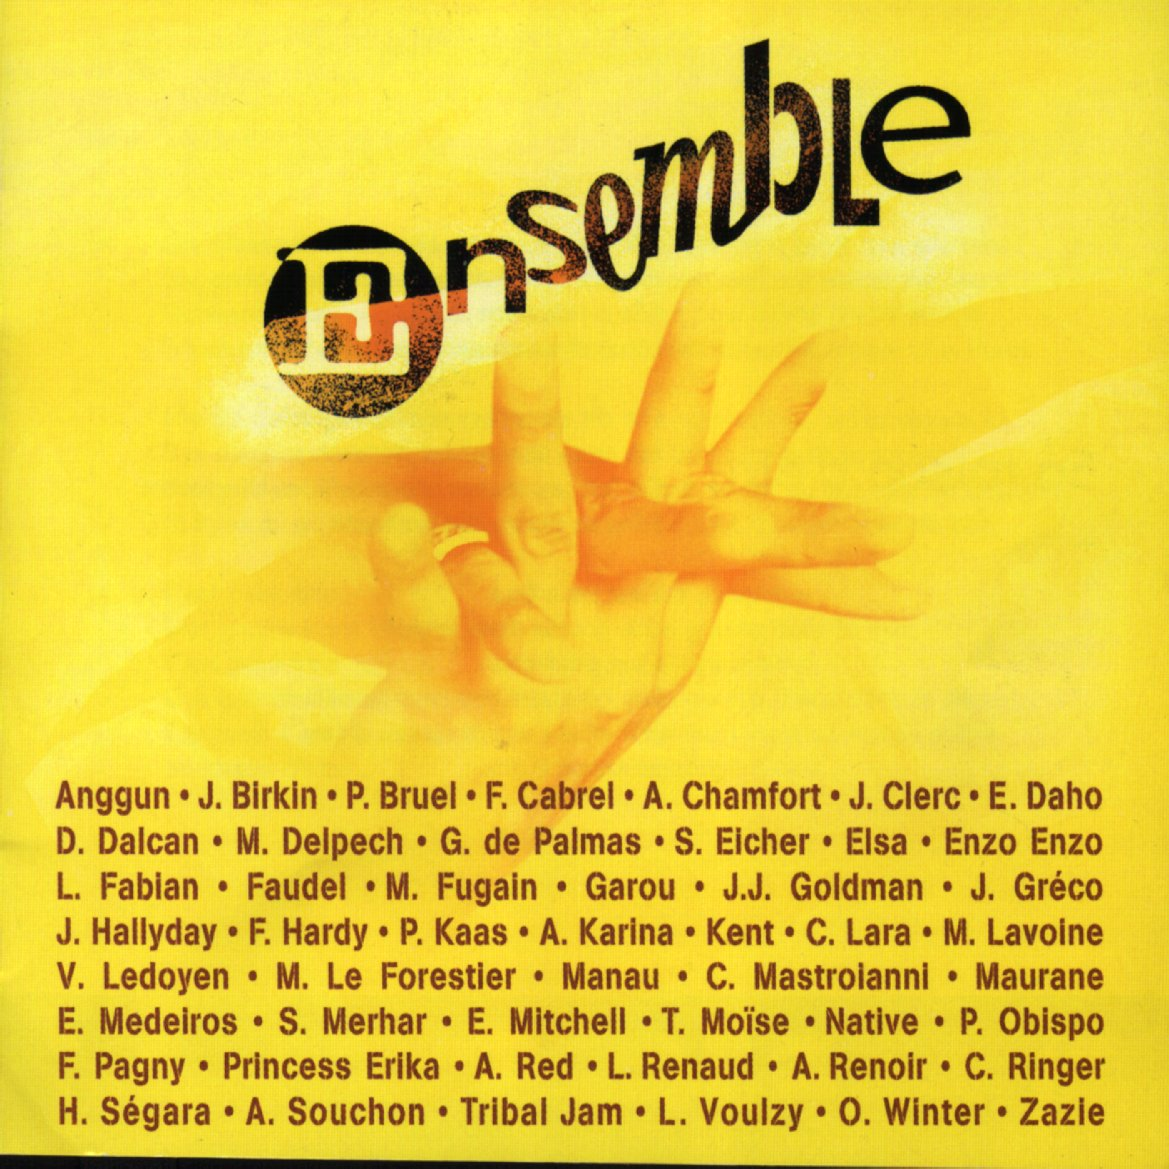 Ensemble.jpg (238457 octets)